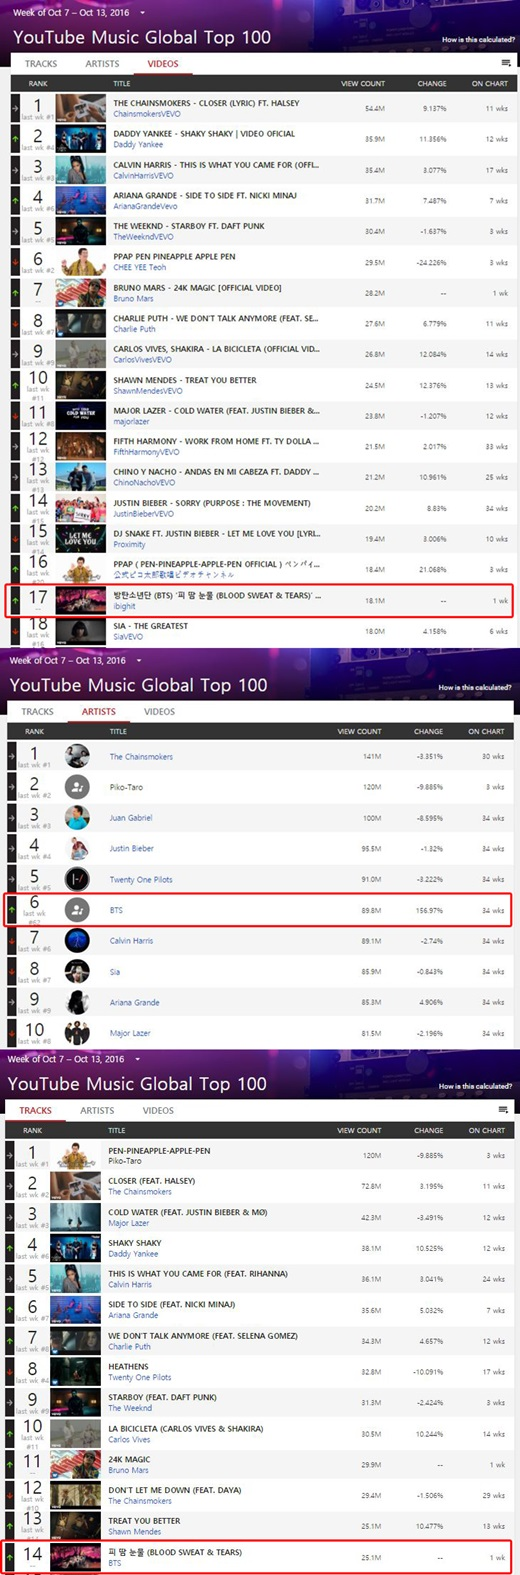 Bts Makes More Achievements On Youtube Music Global Top 100 Charts Kissasian